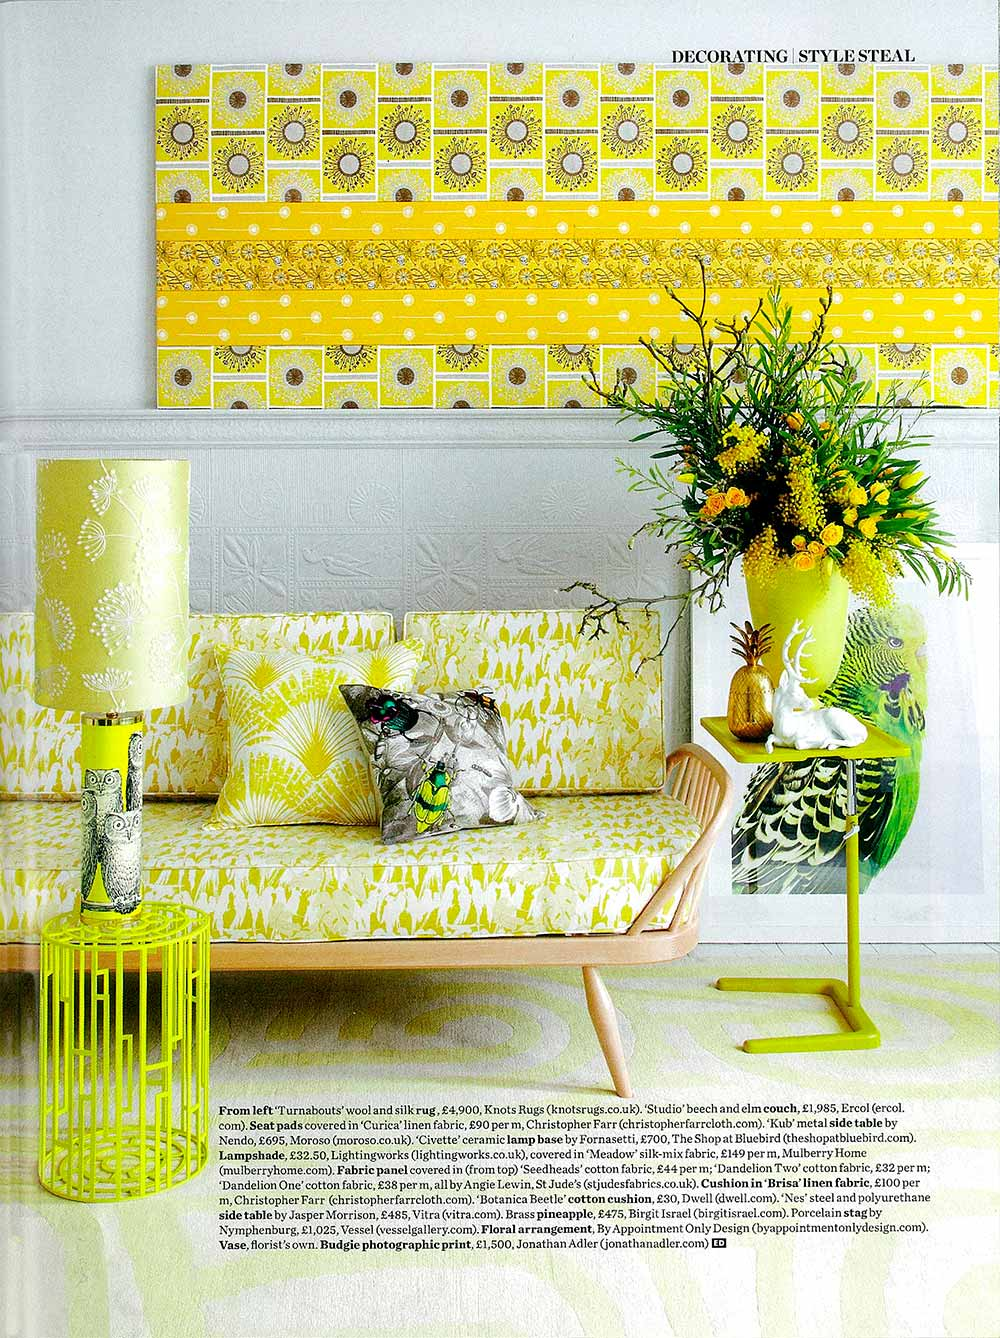 Elle-Decoration-inside-right.jpg